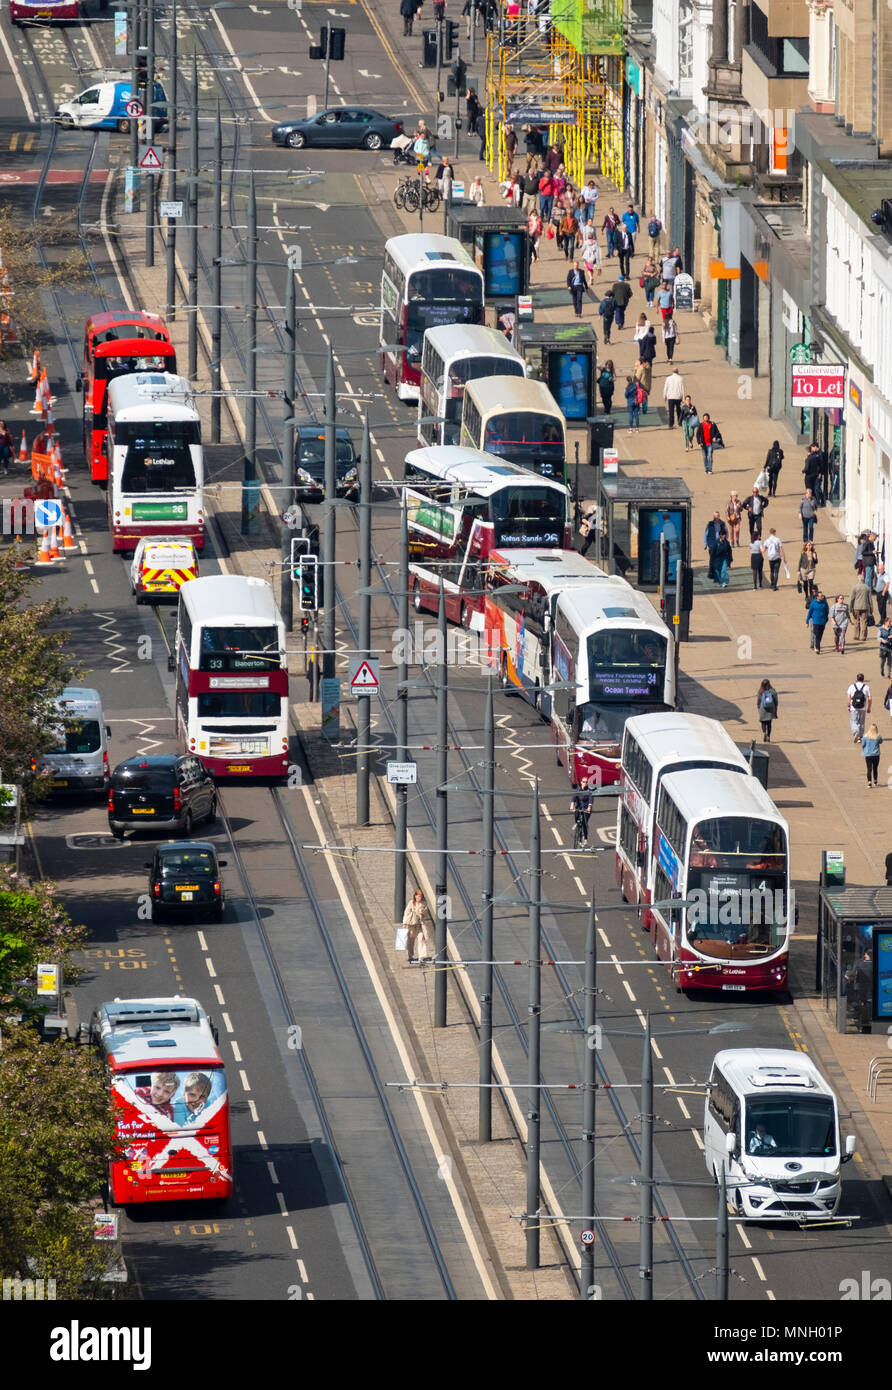 Busy public transport buses  traffic on Princes Street shopping street in central Edinburgh, Scotland, UK - Stock Image